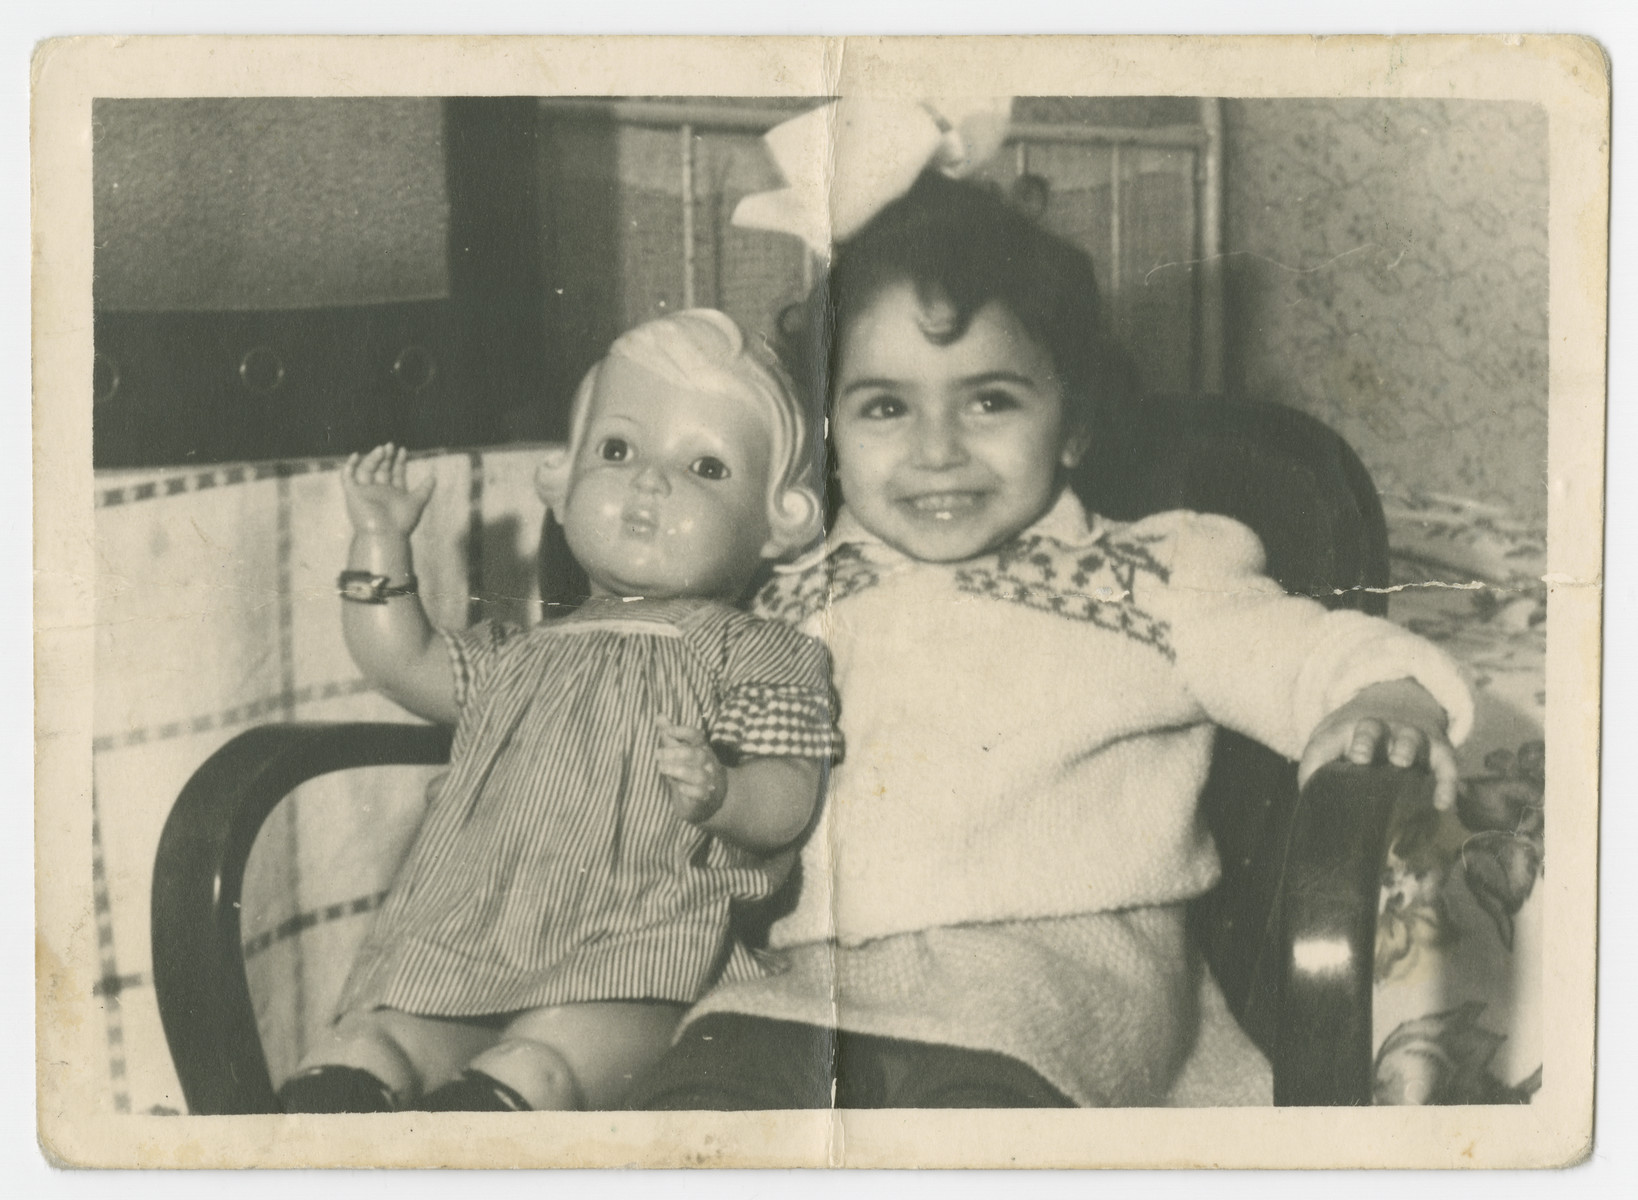 Ellen Zinger (daughter of Malka Lubochinski and Abram Zinger) sits in an armchair with her doll in the Bergen-Belsen displaced persons camp.